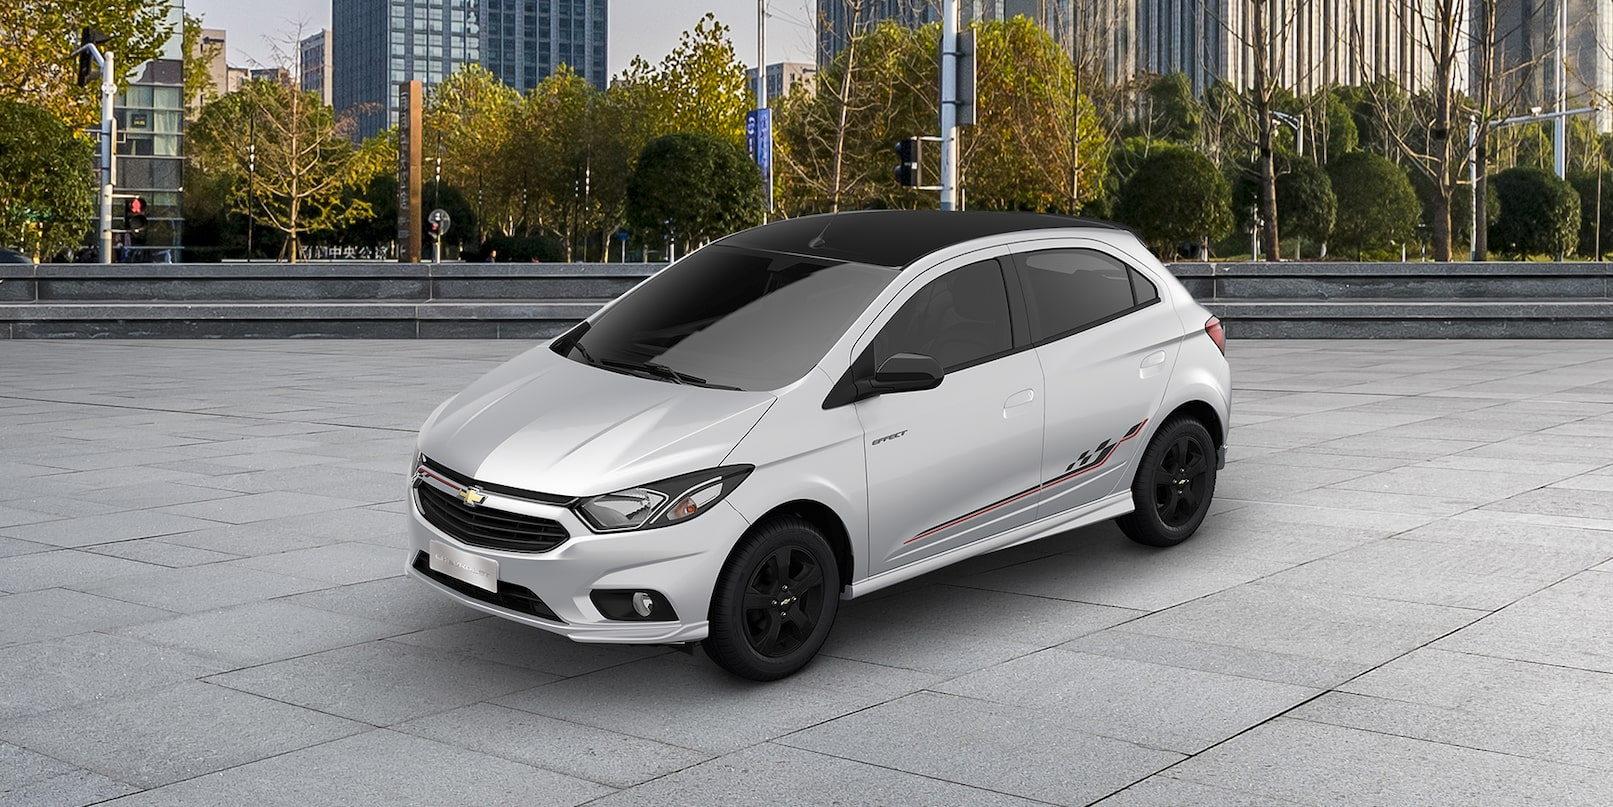 hight resolution of novo hatch chevrolet onix effect 2019 branco summit